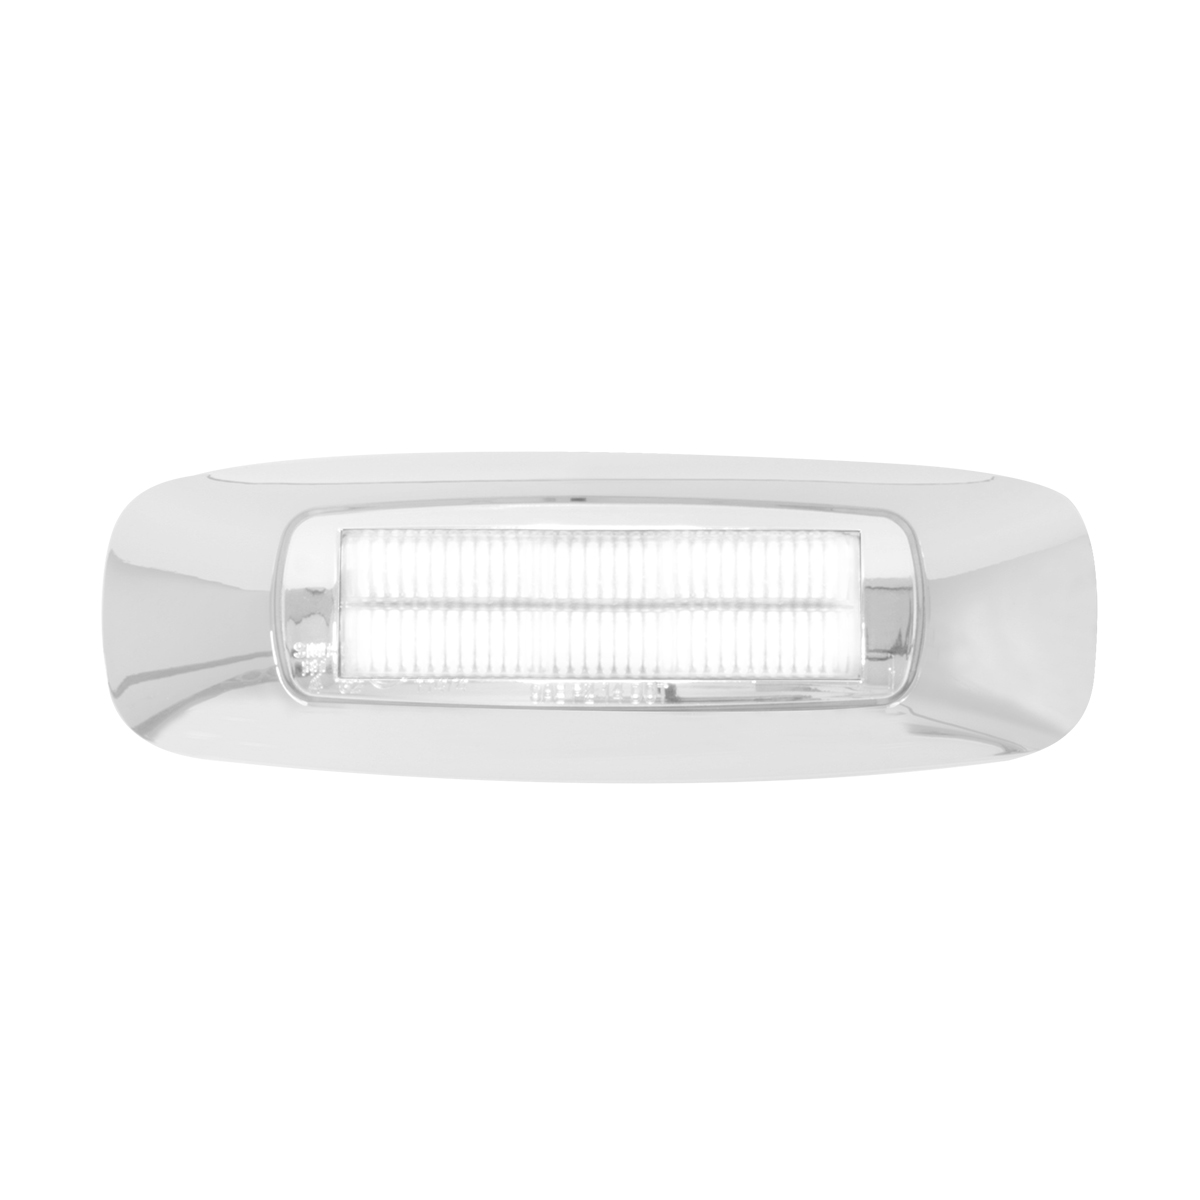 "74734 4-5/8"" Dual Function Rectangular Prime LED Light"